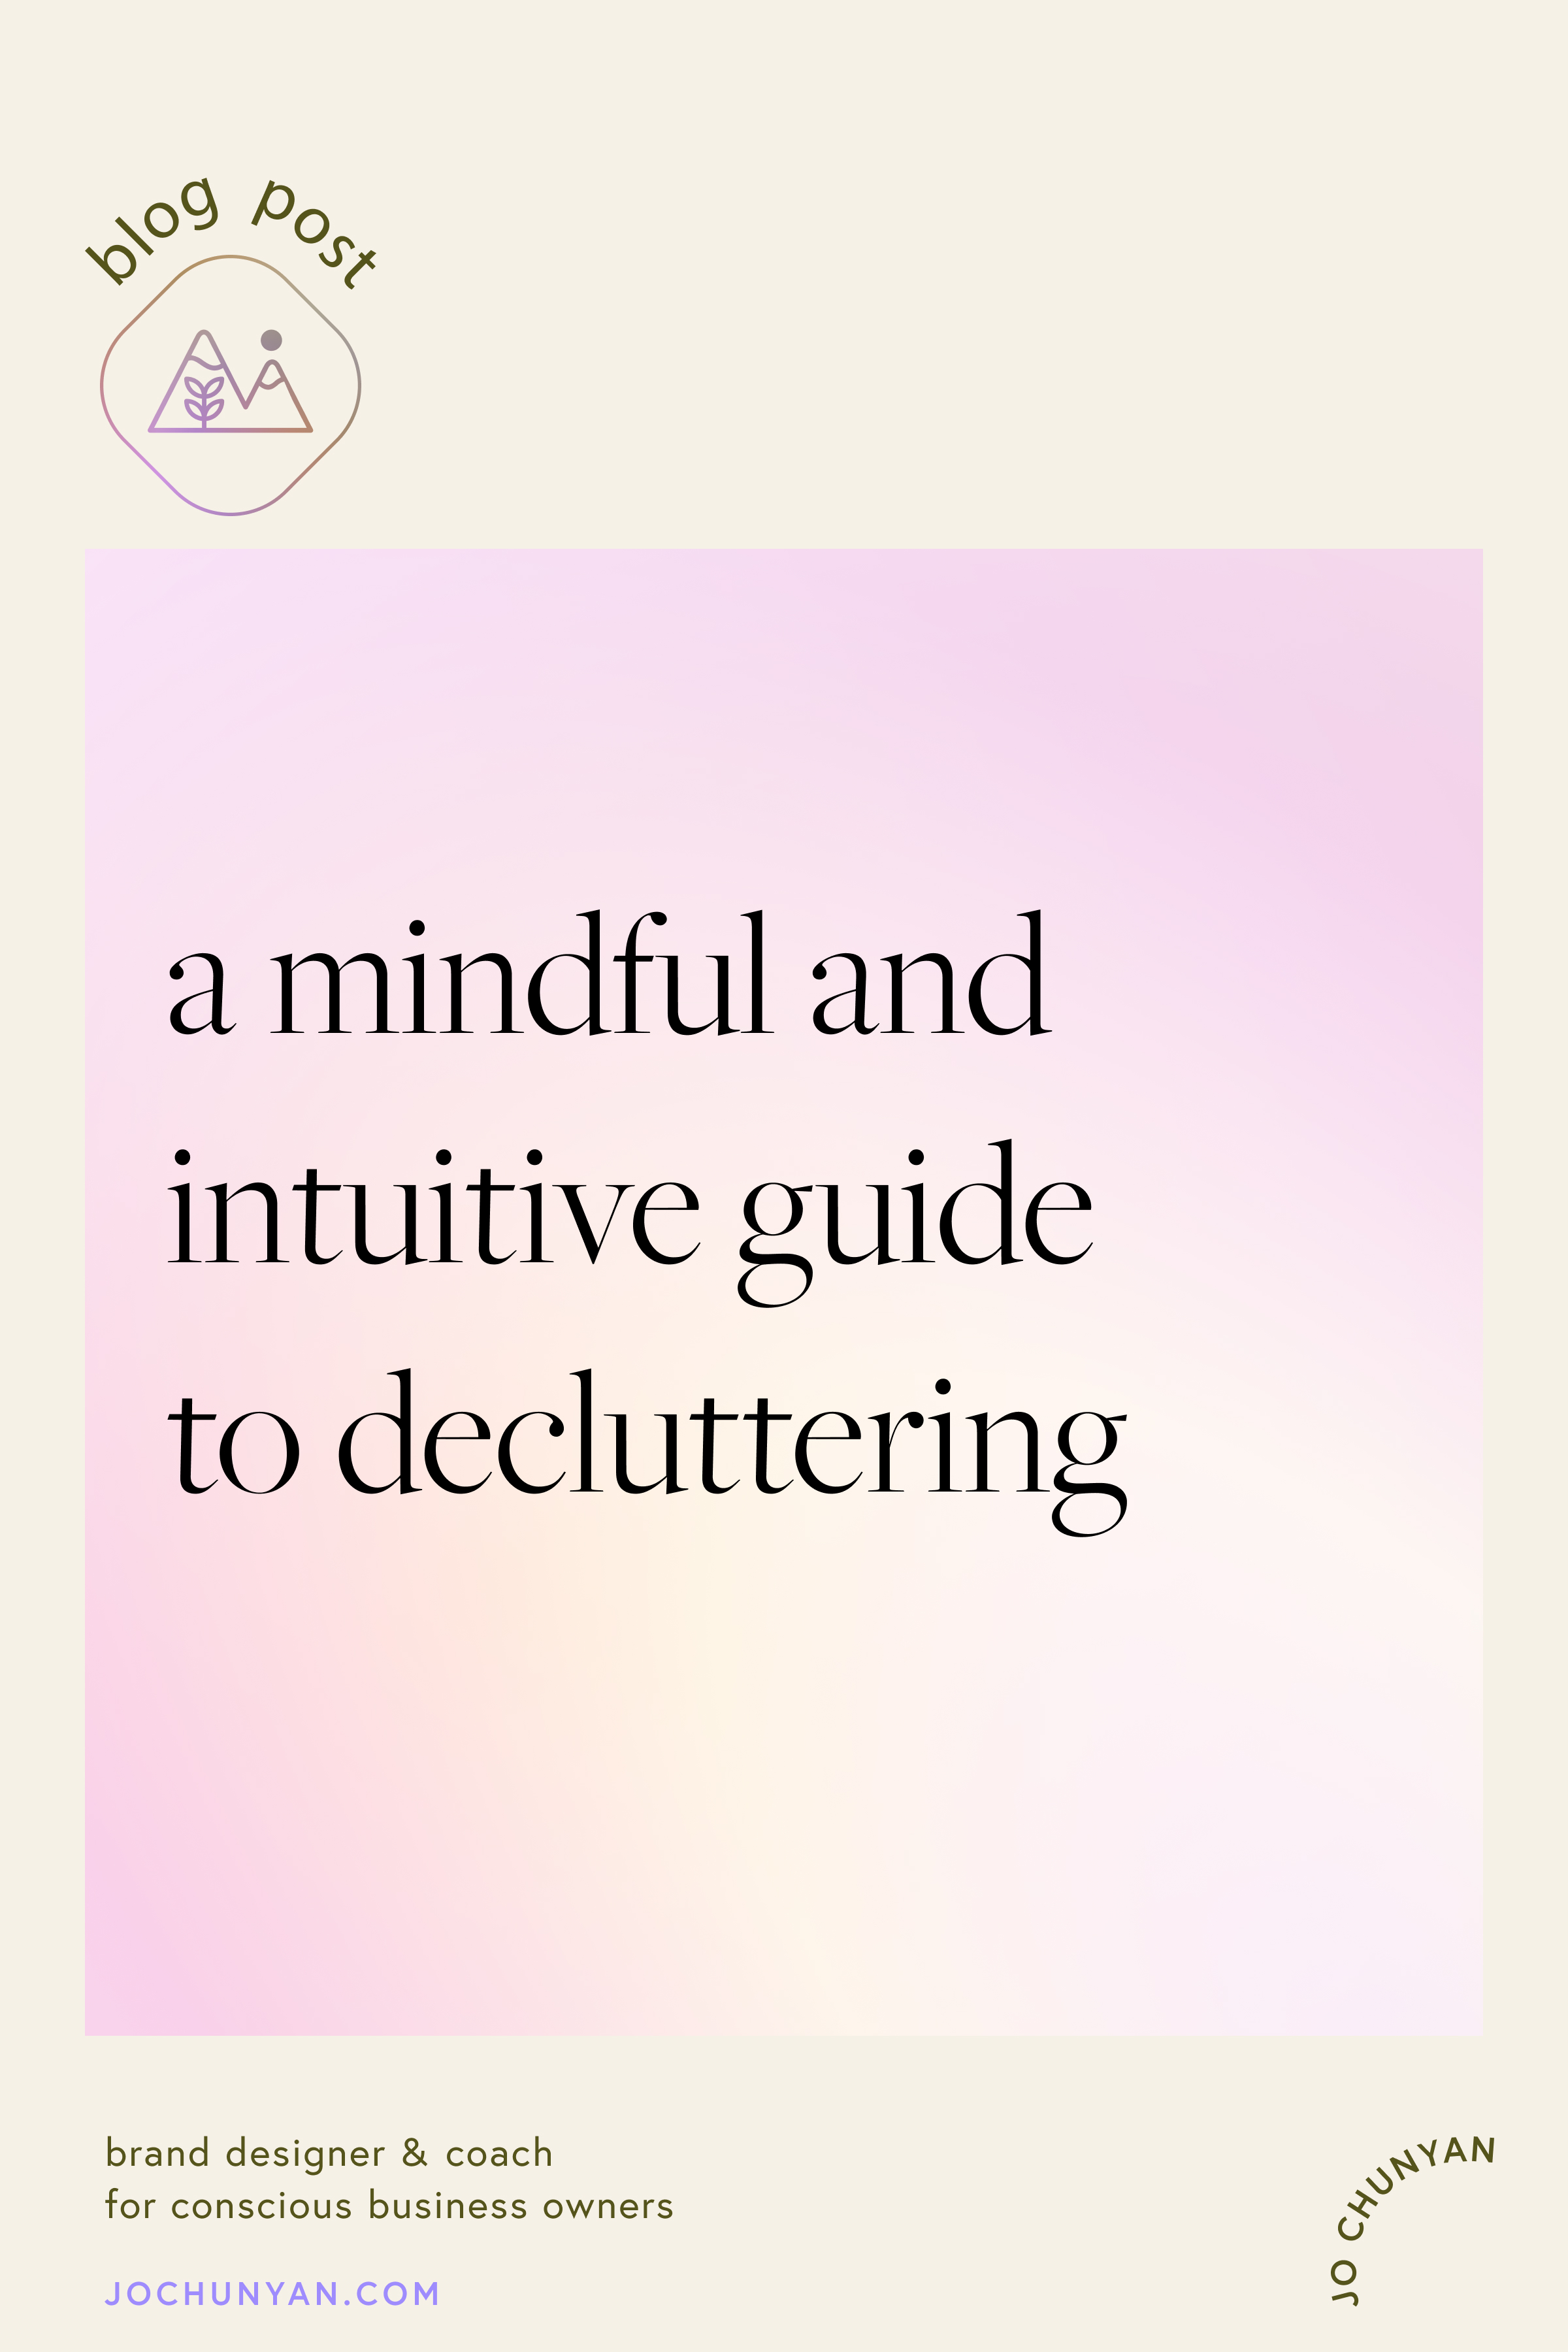 A mindful and intuitive guide to decluttering